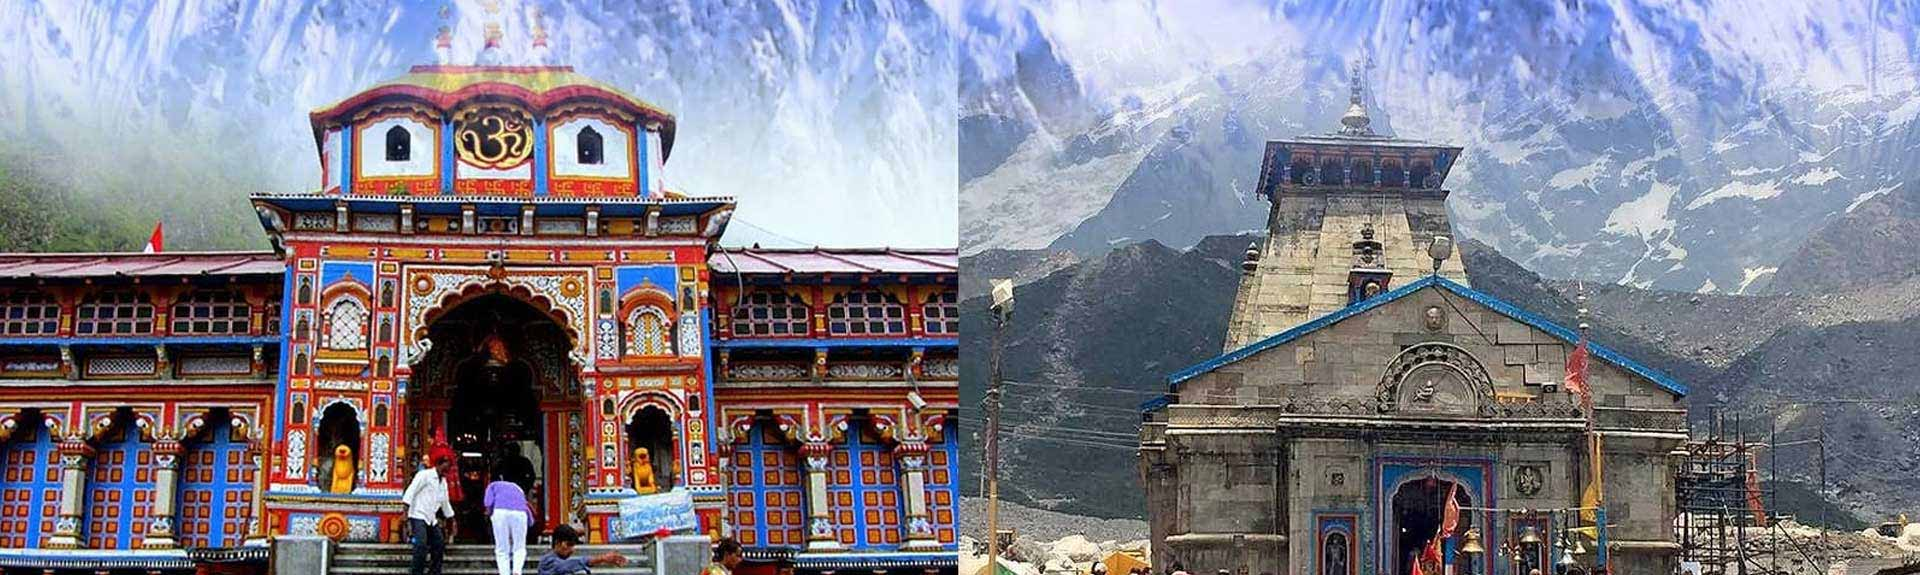 Do dham yatra by tempo traveller